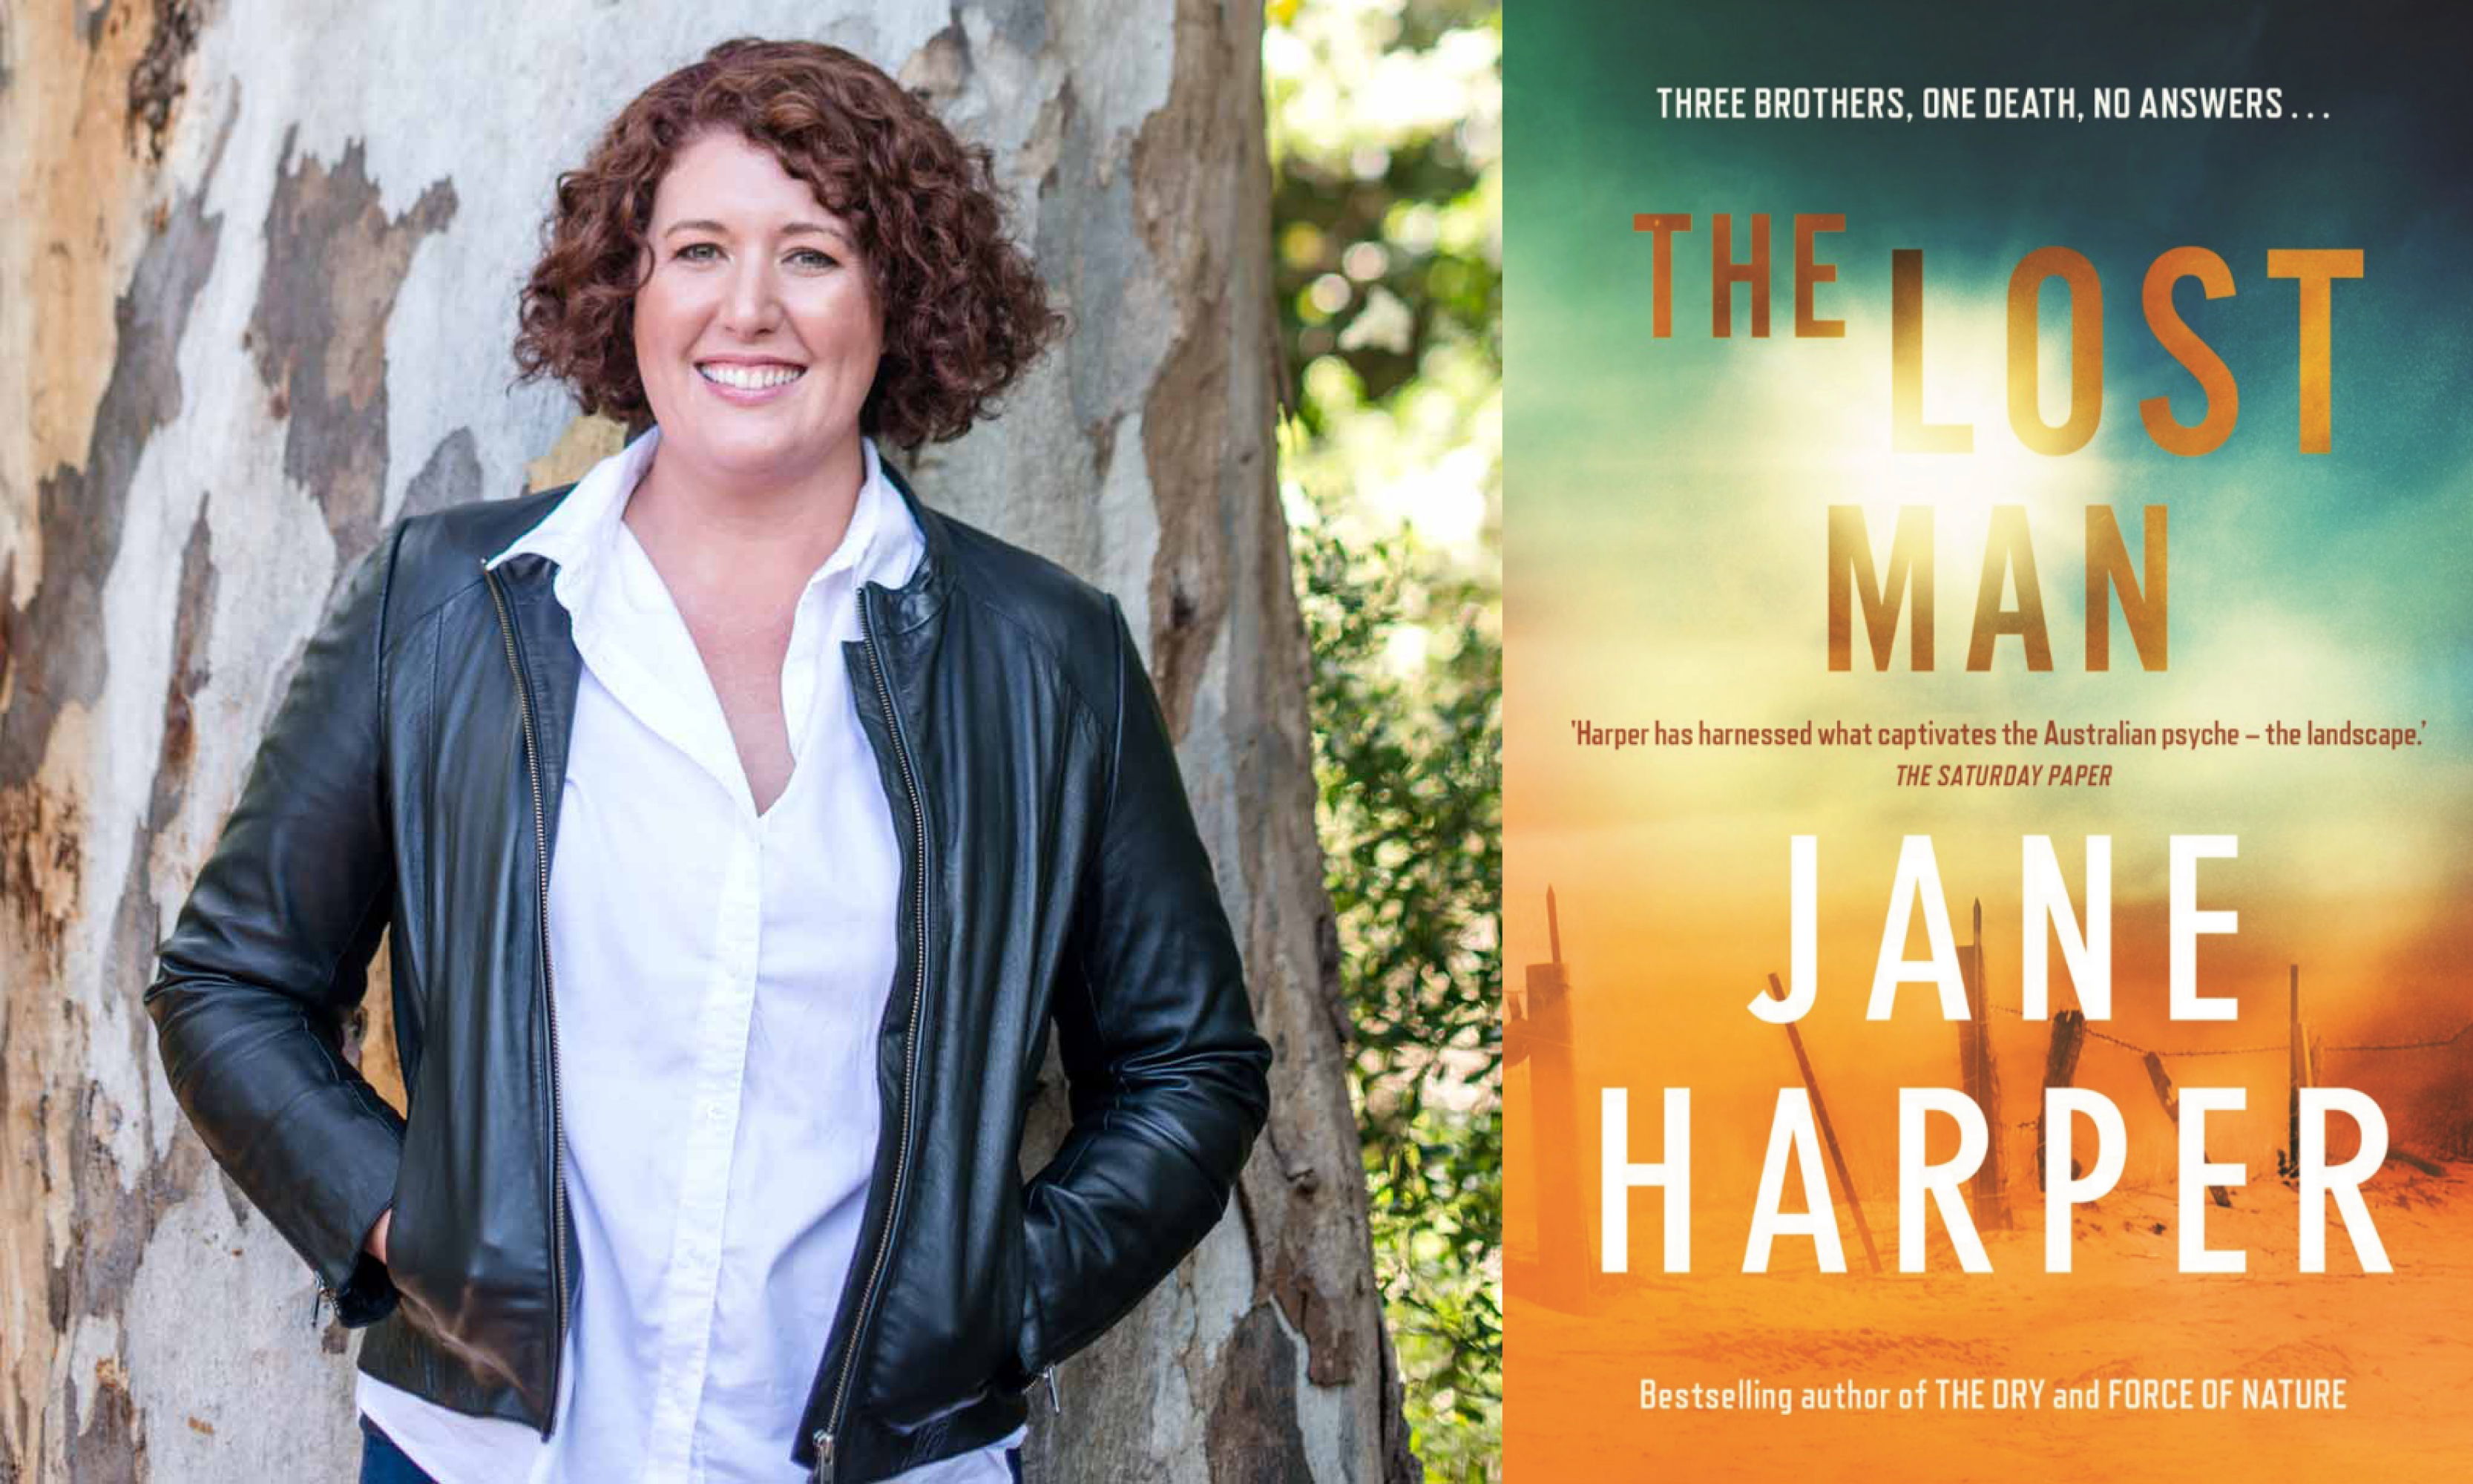 Jane Harper unleashes another outback crime novel, The Lost Man